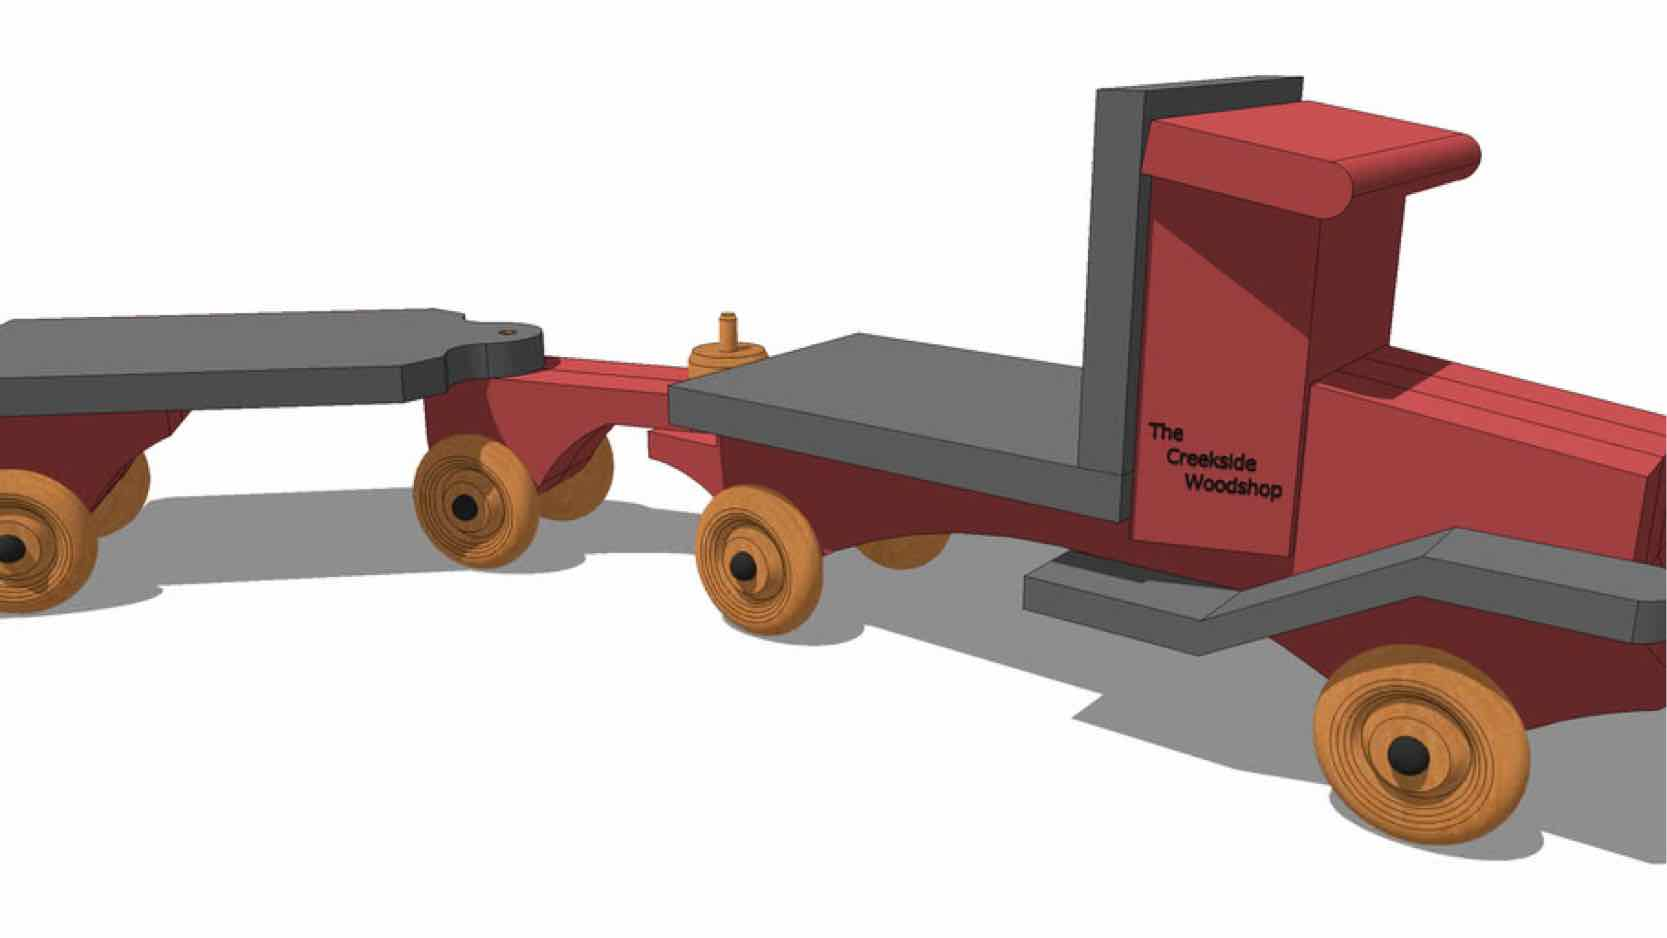 trucks,sketchup,Google 3D,3-D warehouse,truck and trailer,toys,games,childs,childrens,kids,furniture,drawings,free woodworking plans,projects,do it yourself,woodworkers